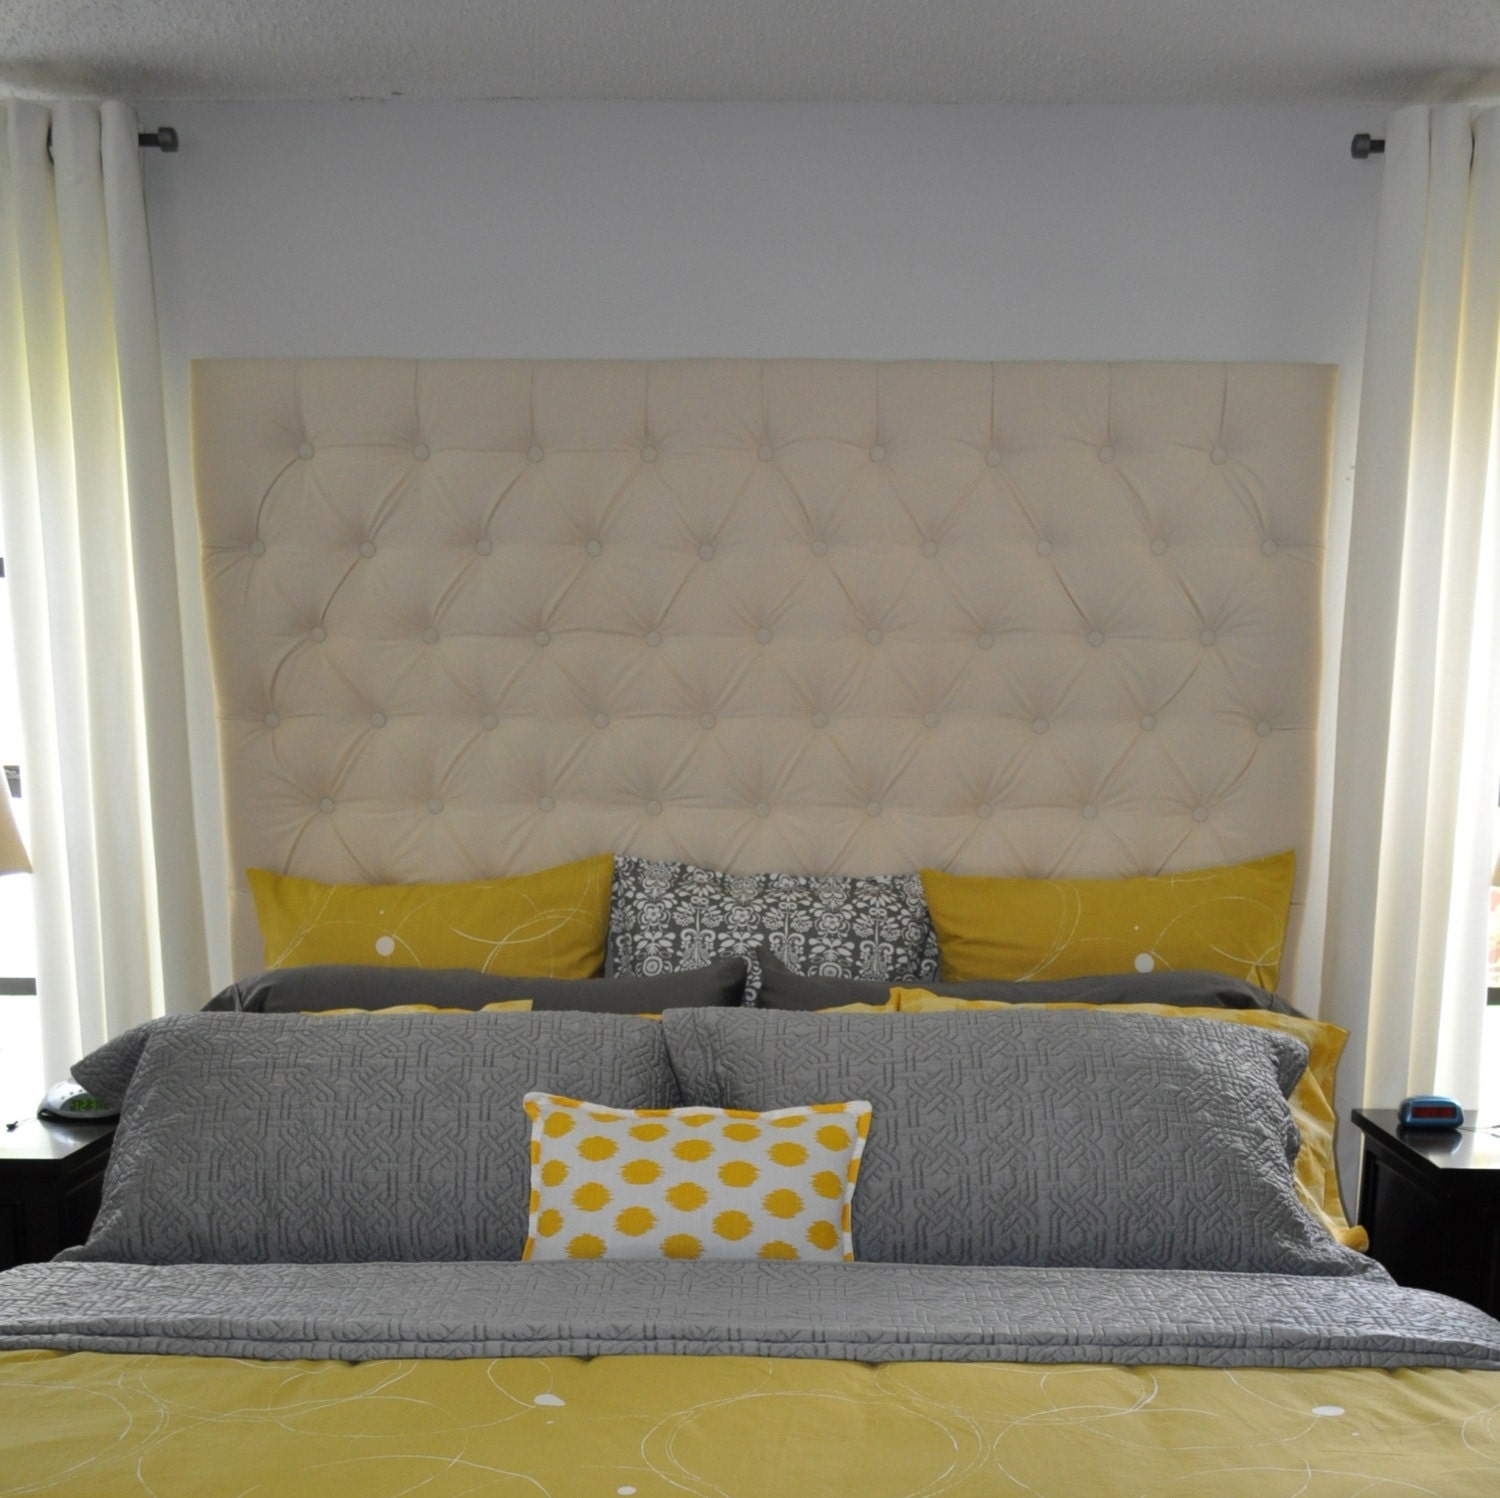 items similar to diamond tufted cotton canvas headboard king tall on etsy. Black Bedroom Furniture Sets. Home Design Ideas